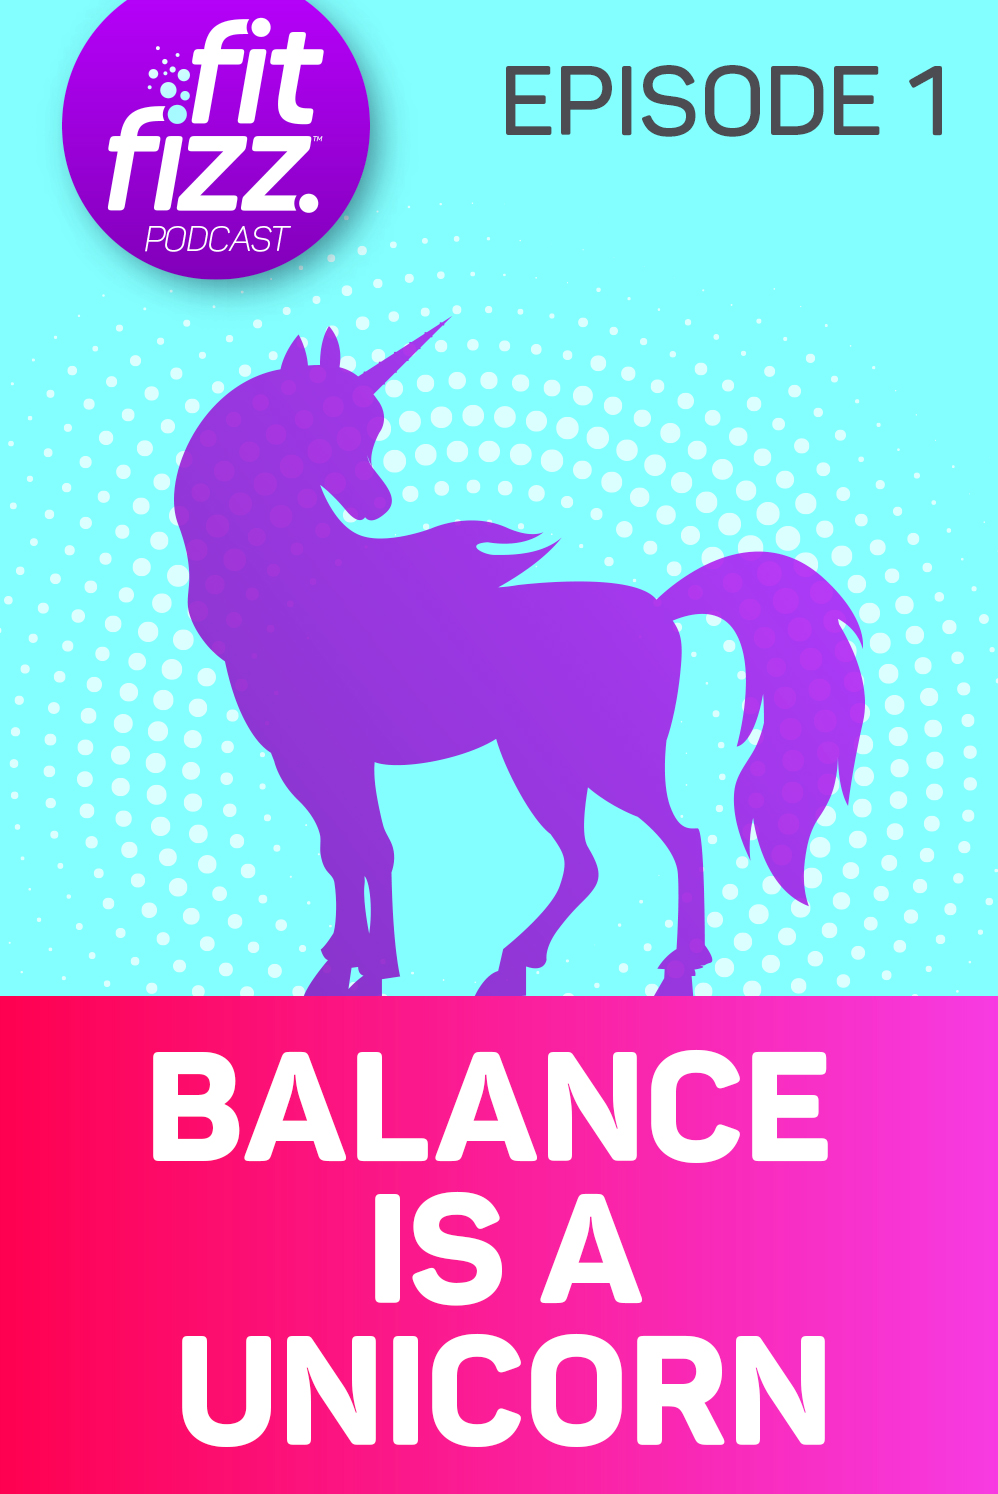 Podcast Episode 1: Balance is a Unicorn. Balancing life is a mythological creature. Here are some of my best tips for days when you can't give 100%.